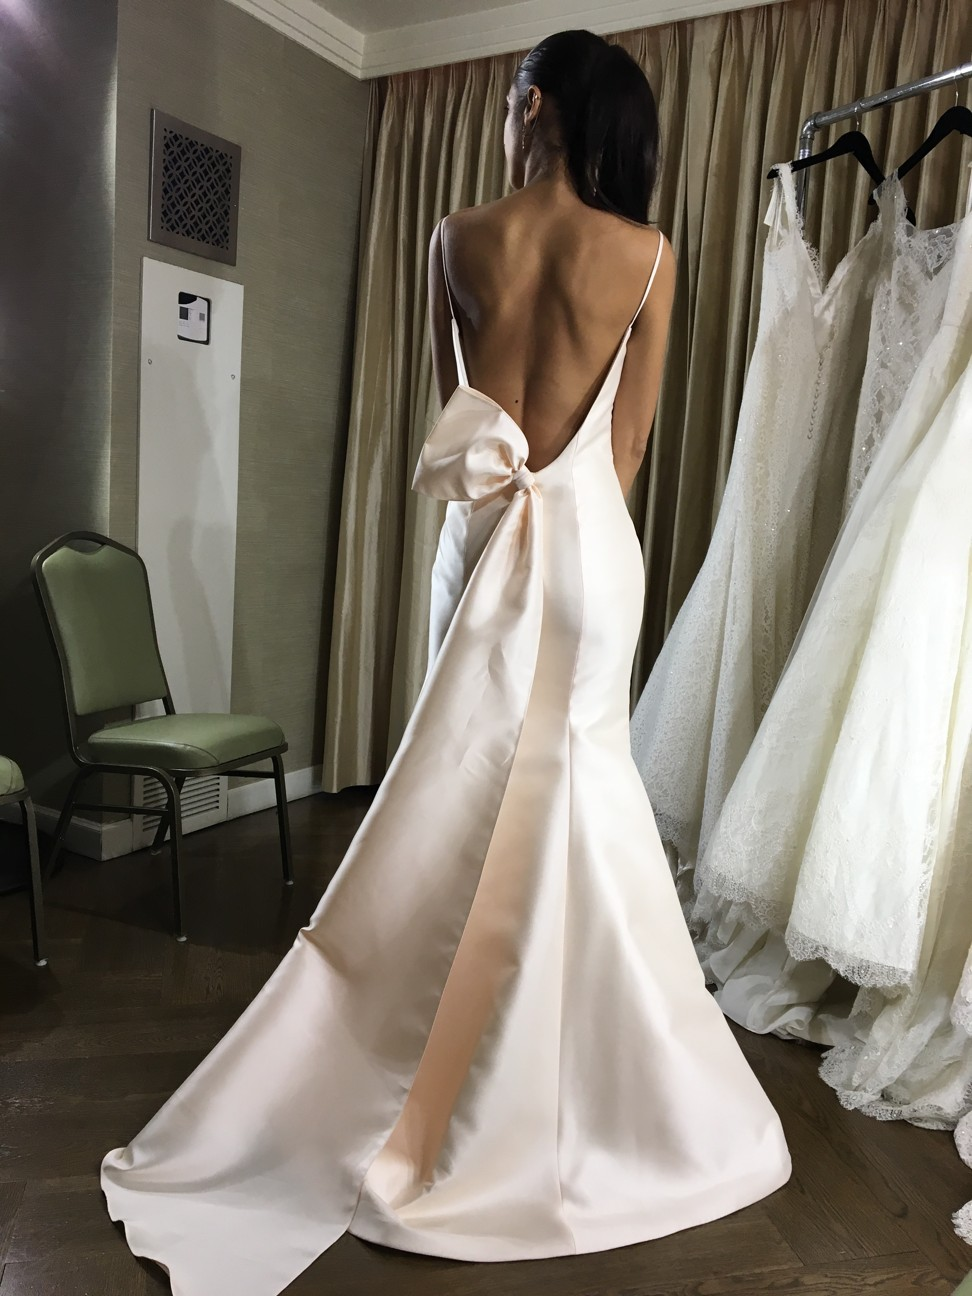 Modesty makes a comeback in bridal fashion as wedding gowns trend ...